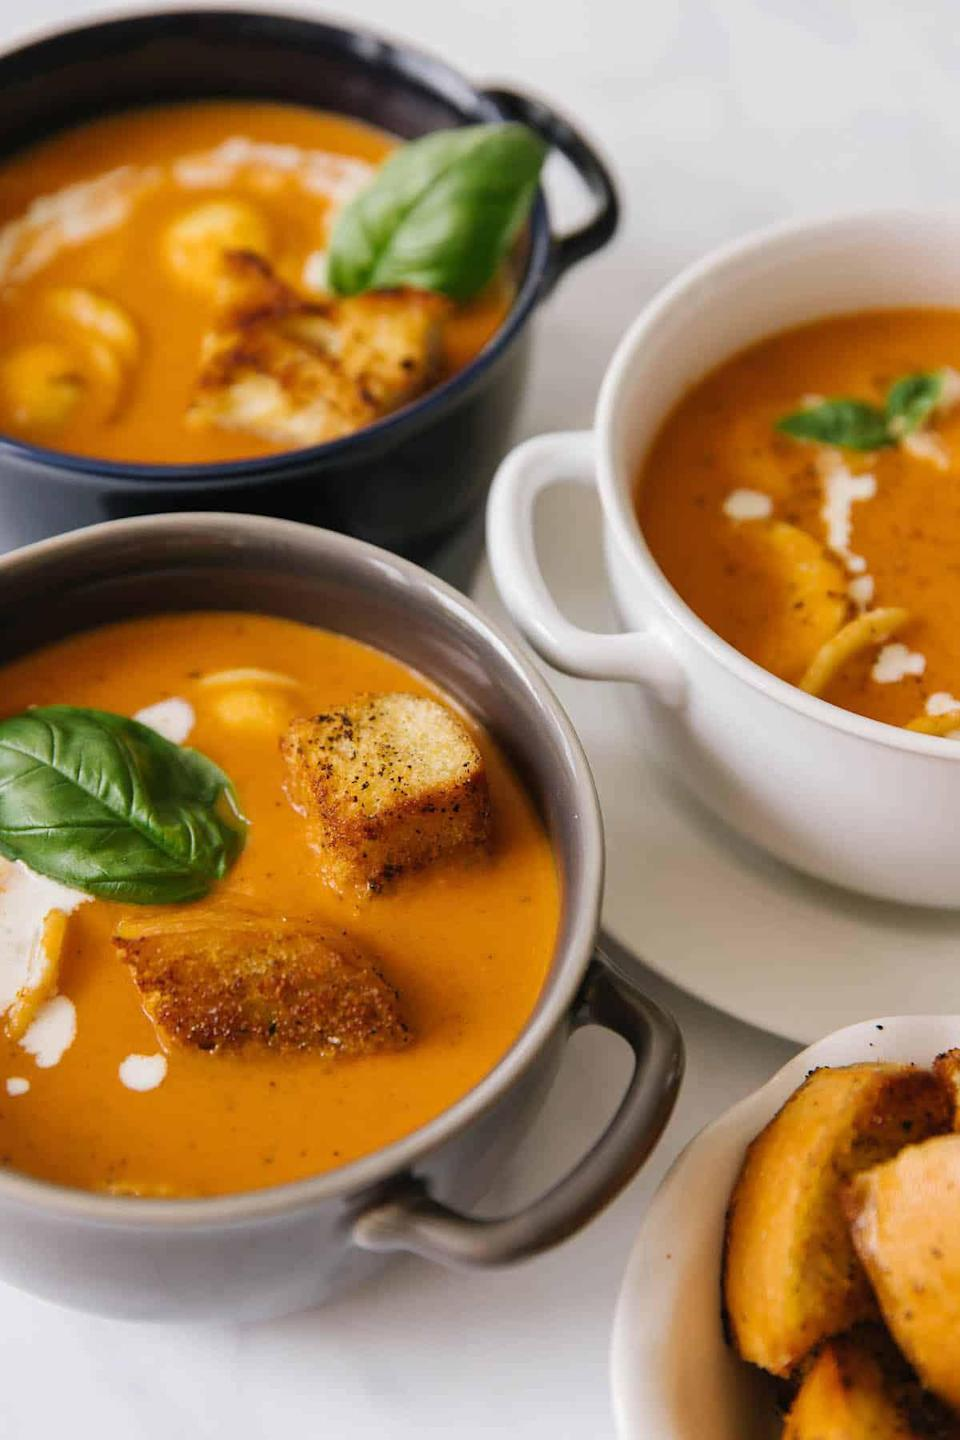 """<p>One of the best ways to combat cold weather is to eat a warm bowl of soup. This creamy tomato basil soup is the perfect comfort food you need to <a href=""""https://www.thedailymeal.com/best-recipes/15-soups-and-stews-will-keep-you-warm-winter-slideshow?referrer=yahoo&category=beauty_food&include_utm=1&utm_medium=referral&utm_source=yahoo&utm_campaign=feed"""" rel=""""nofollow noopener"""" target=""""_blank"""" data-ylk=""""slk:warm you up"""" class=""""link rapid-noclick-resp"""">warm you up</a>. Add the soup's ingredients to a slow cooker and let it do the cooking for you.</p> <p><a href=""""https://www.thedailymeal.com/best-recipes/tomato-basil-soup-freezer-homecooked-recipe?referrer=yahoo&category=beauty_food&include_utm=1&utm_medium=referral&utm_source=yahoo&utm_campaign=feed"""" rel=""""nofollow noopener"""" target=""""_blank"""" data-ylk=""""slk:For the Creamy Tomato Basil Soup recipe, click here."""" class=""""link rapid-noclick-resp"""">For the Creamy Tomato Basil Soup recipe, click here.</a></p>"""